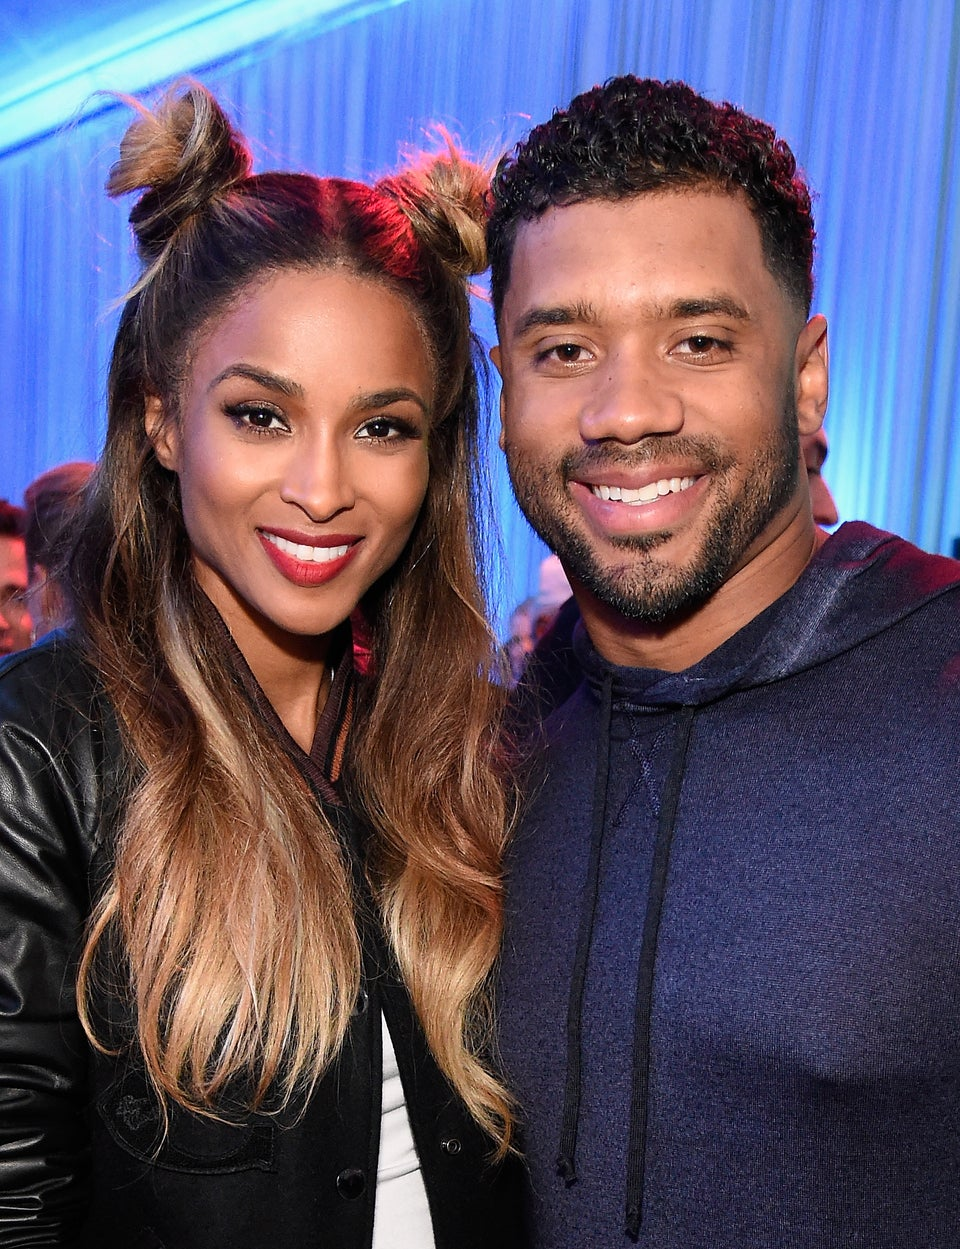 Russell Wilson Says He And Ciara Have Decided On AName For Their Baby: 'We Both Have Some CreativeSense'